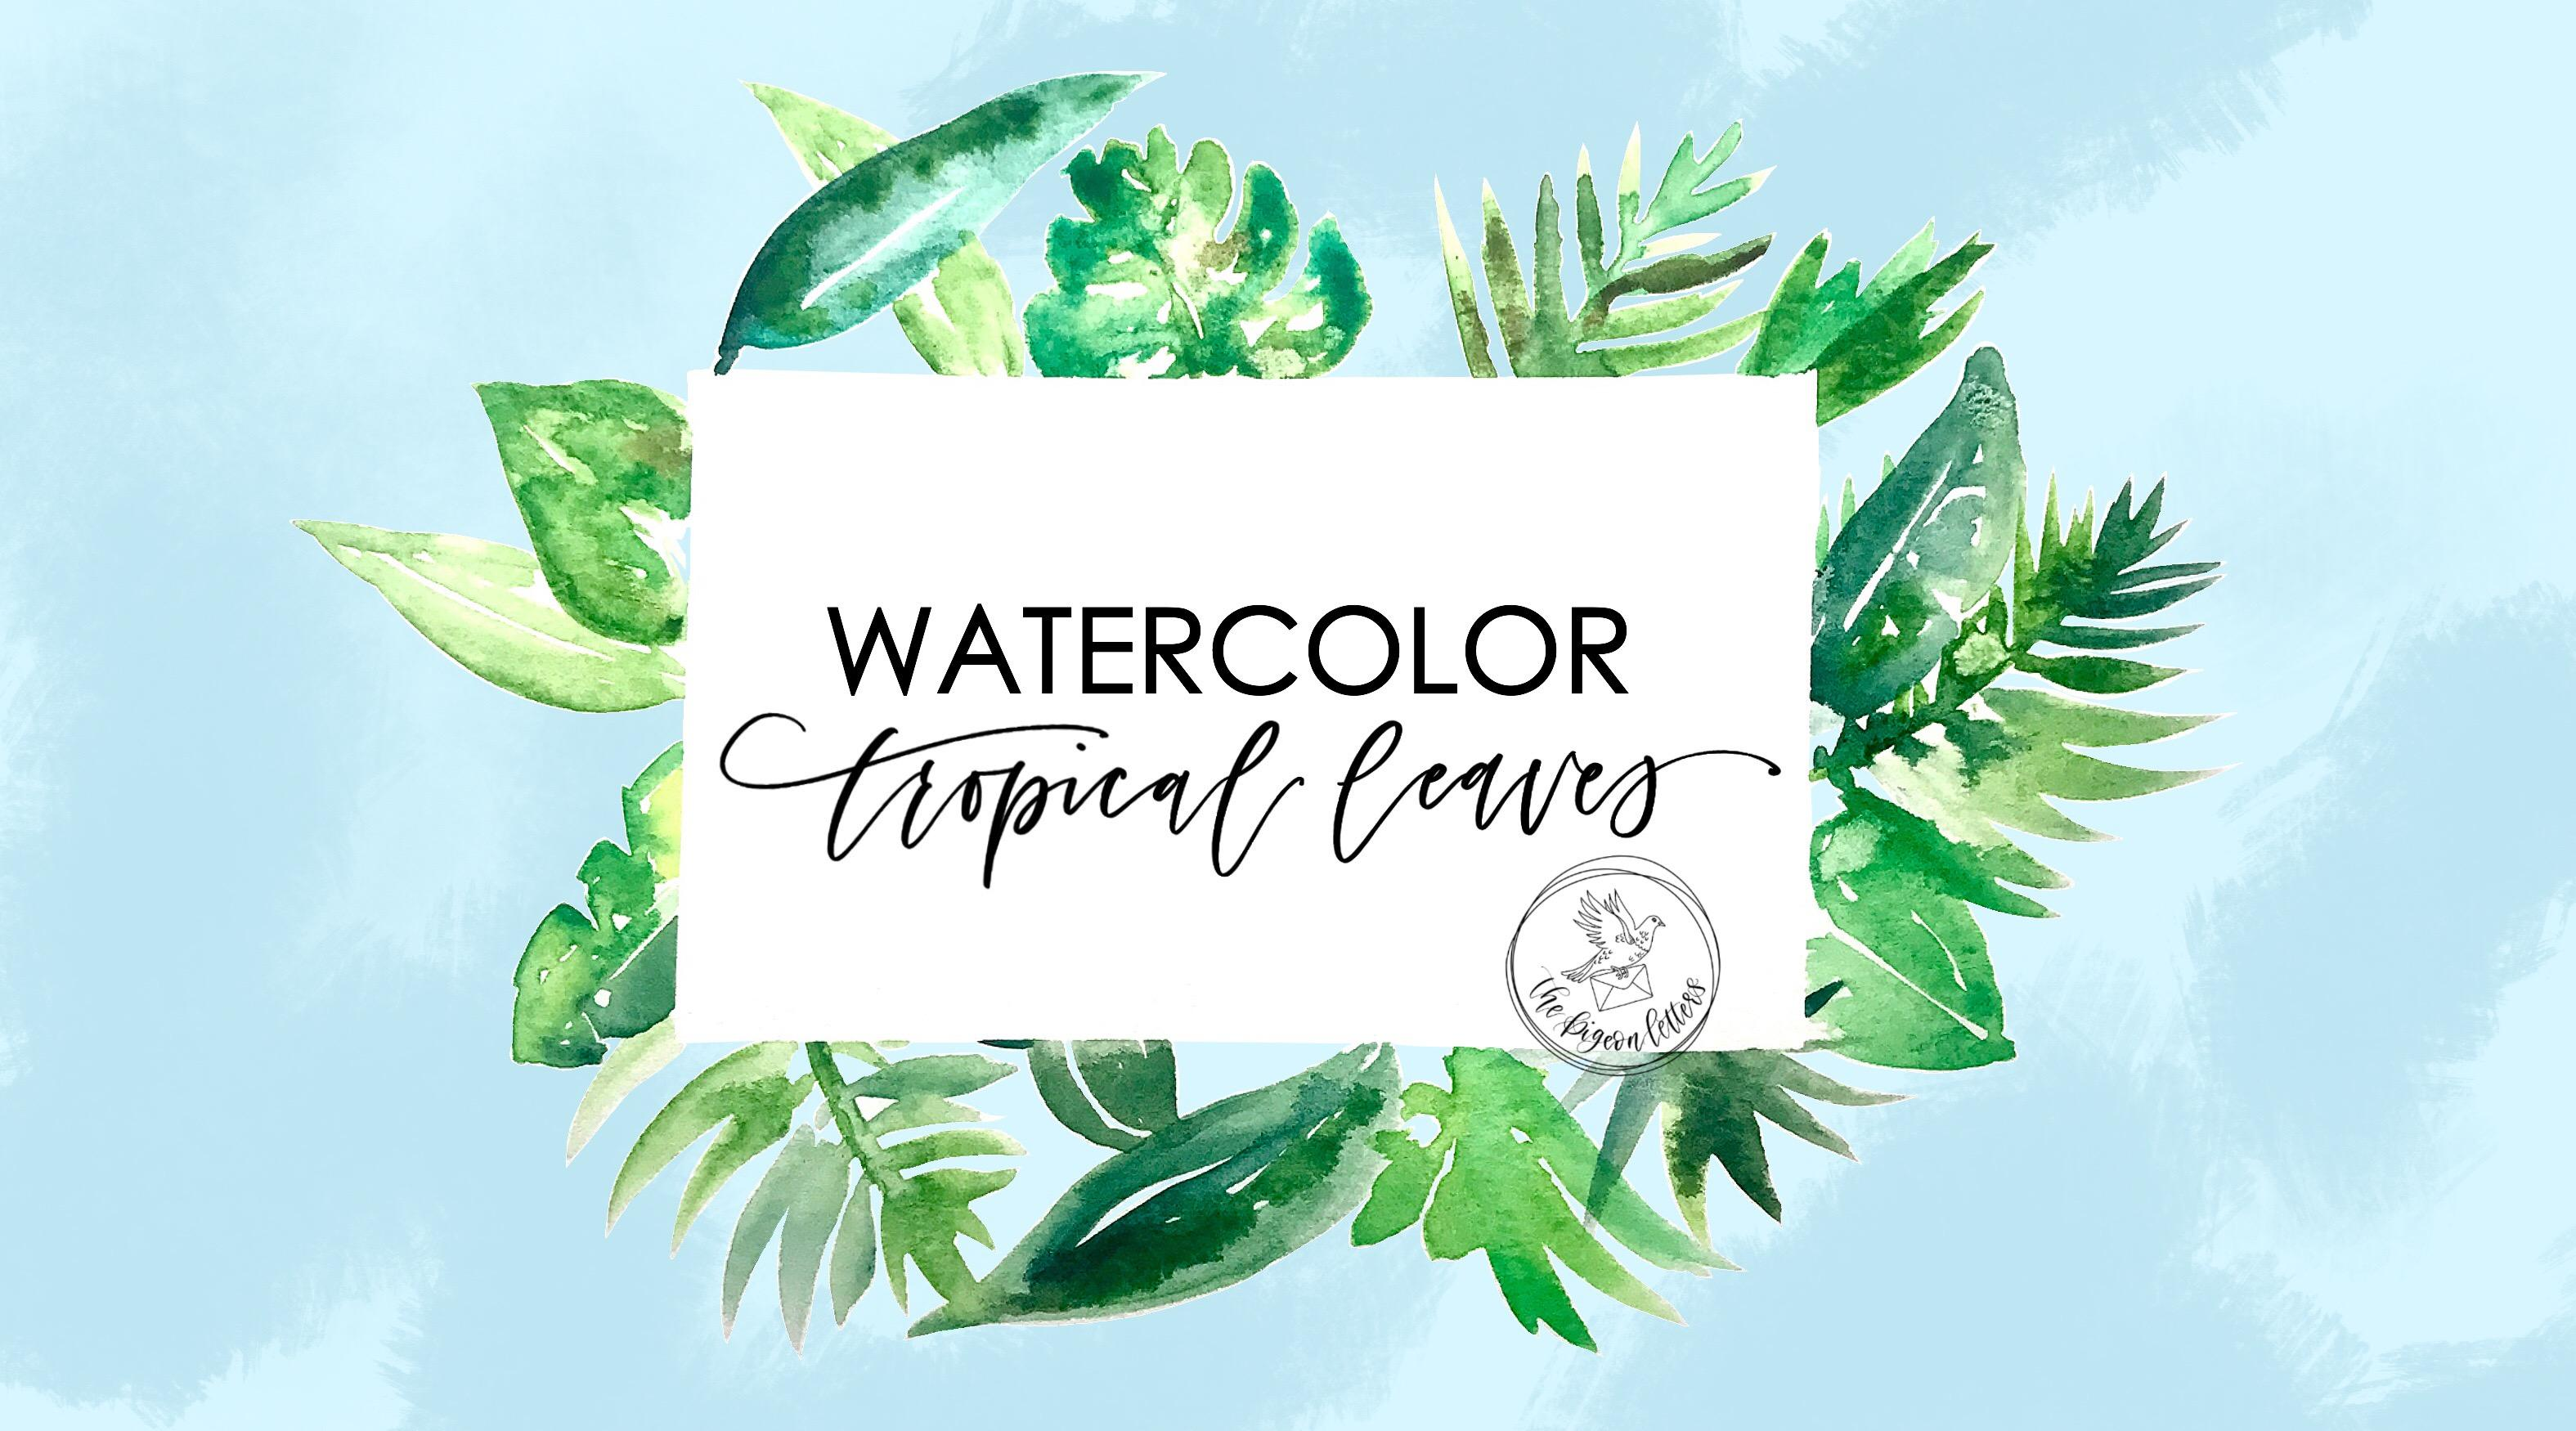 watercolor 9 tropical leaves peggy dean skillshare